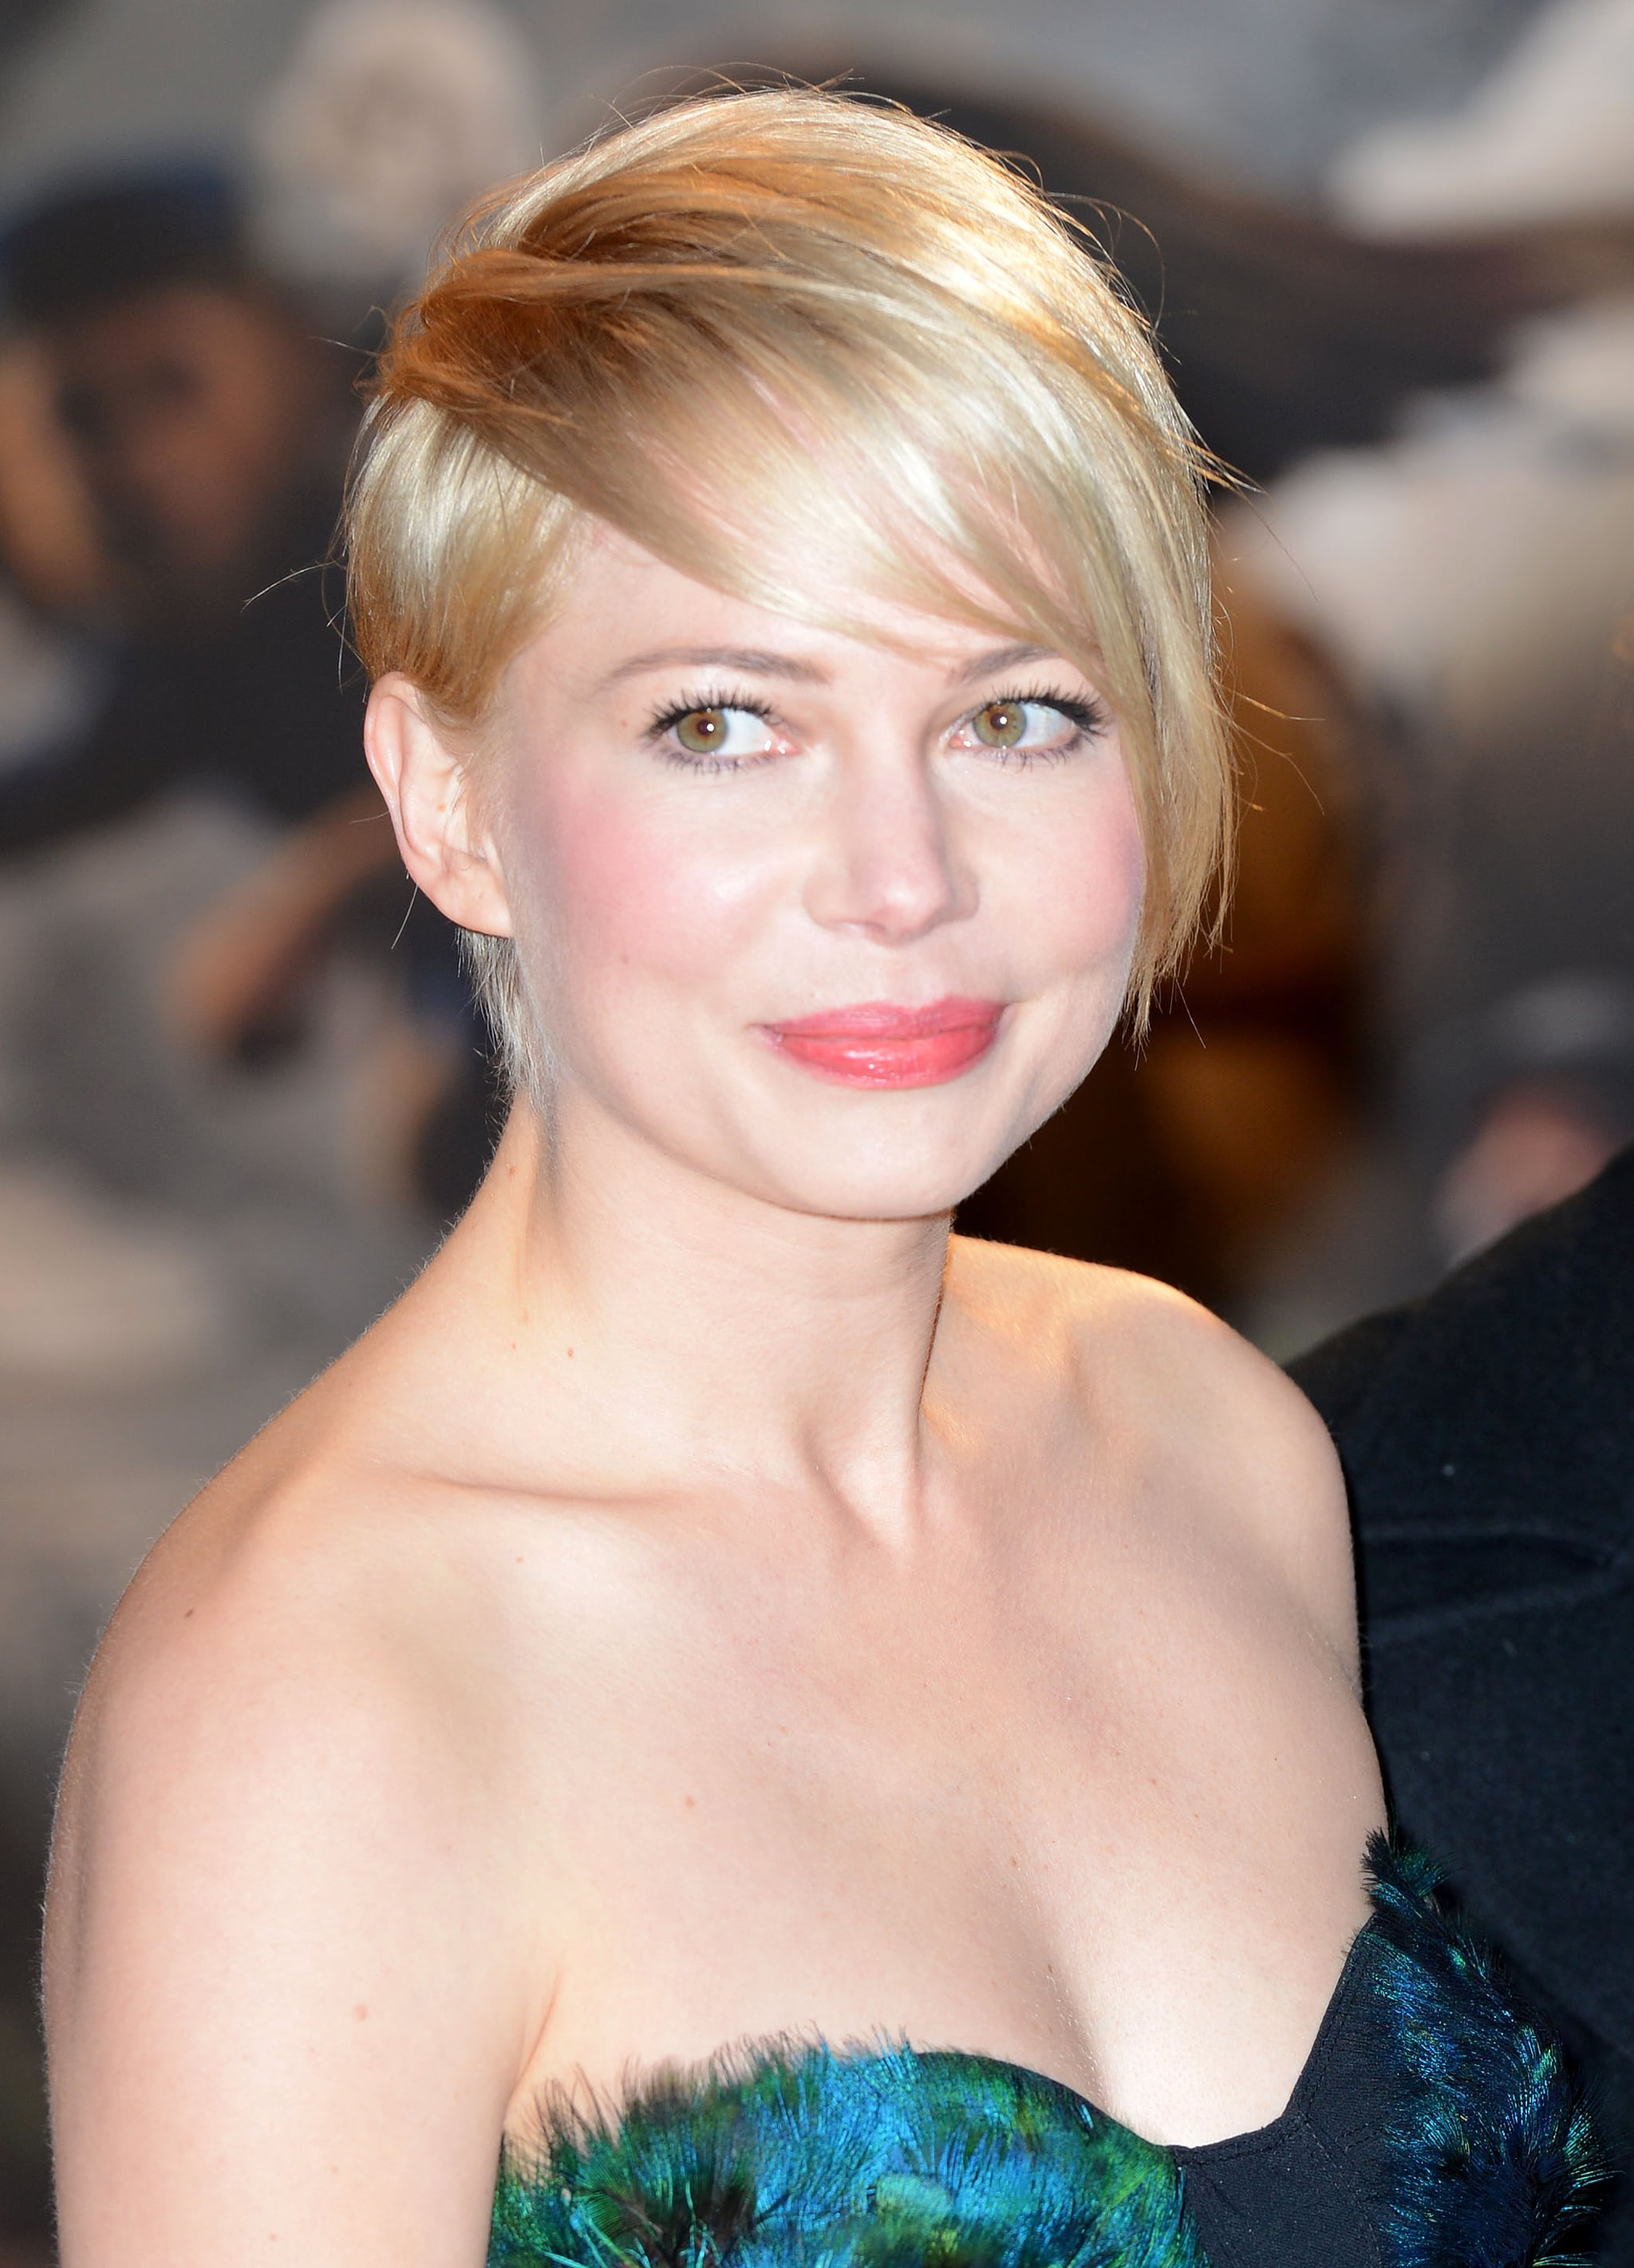 In an attempt to grow out her beloved pixie, Michelle is now sporting an asymmetrical look that harks back to the undercut look of the '80s.